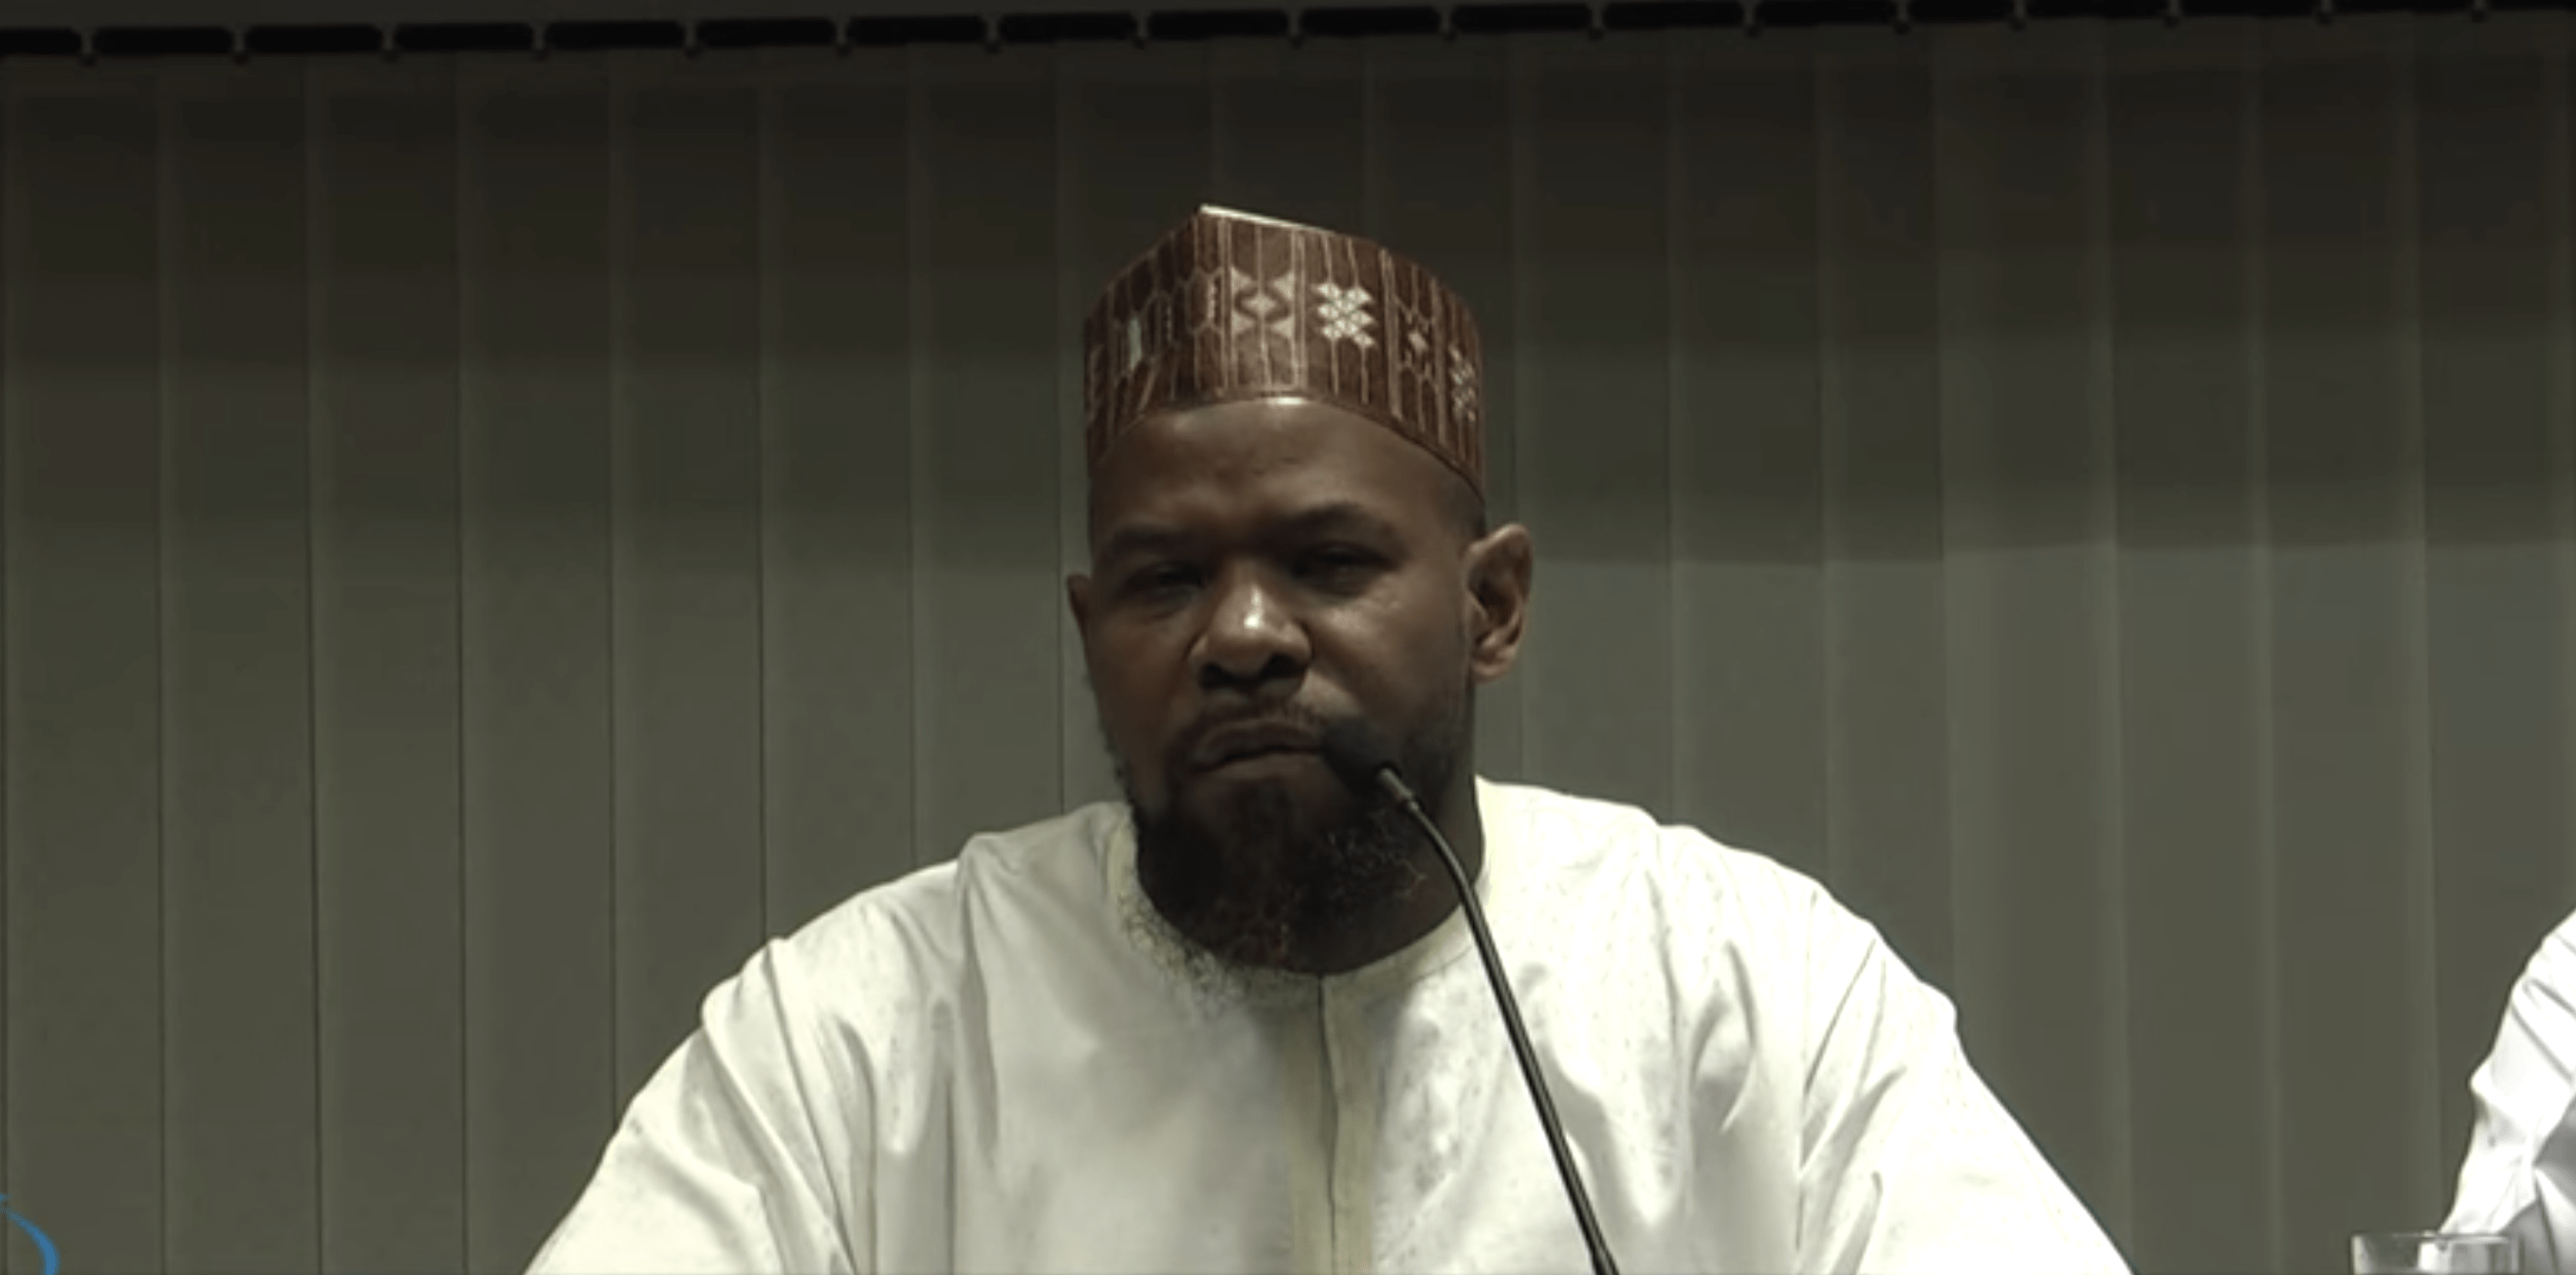 Abu Usamah – The Evils of the Gangster Lifestyle